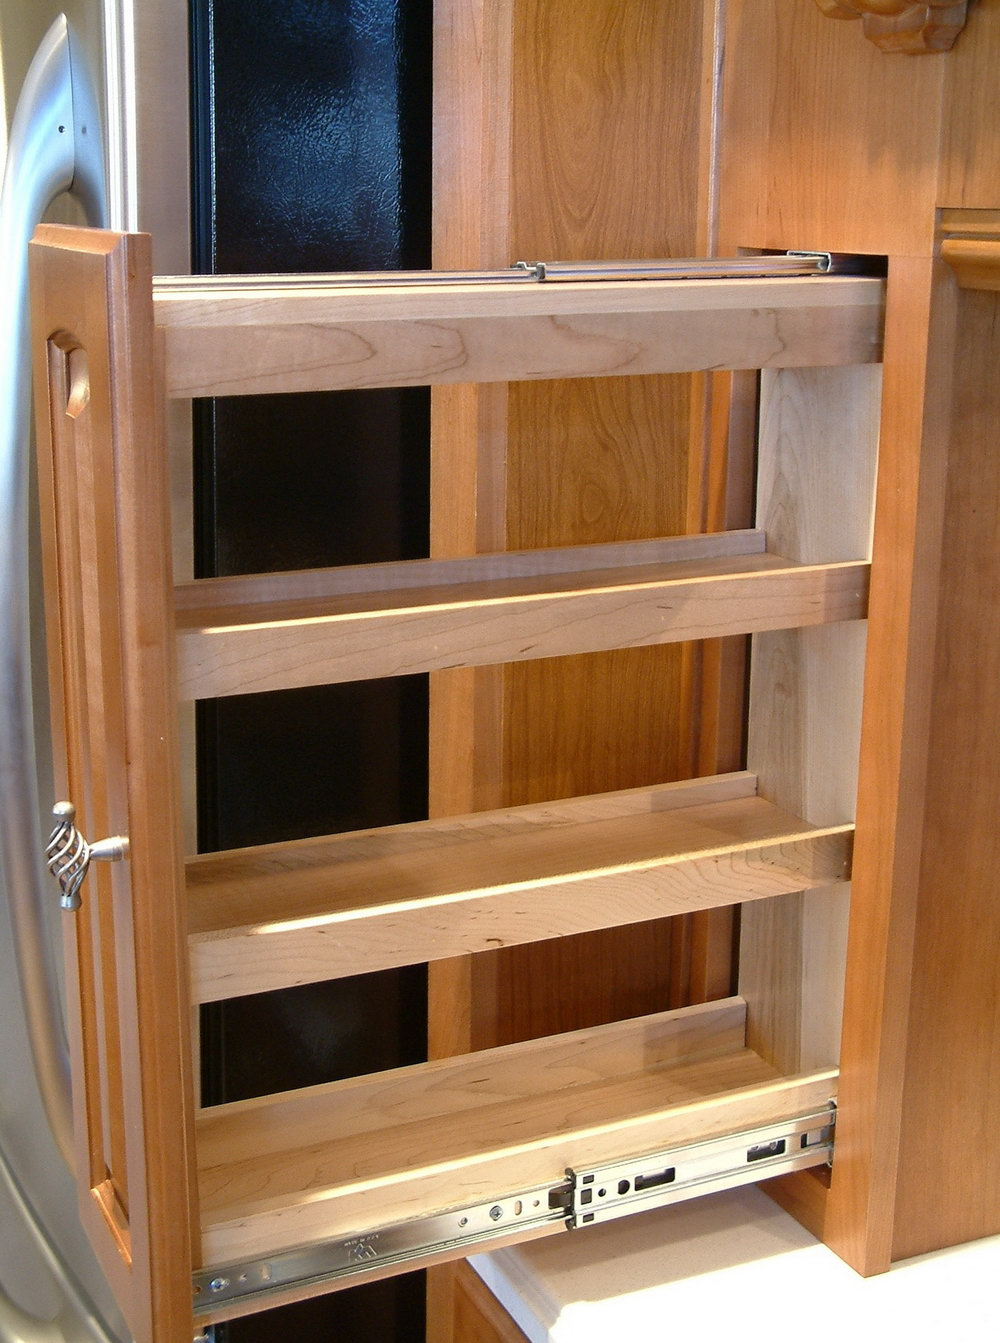 Spice Drawer Organizer Container Store